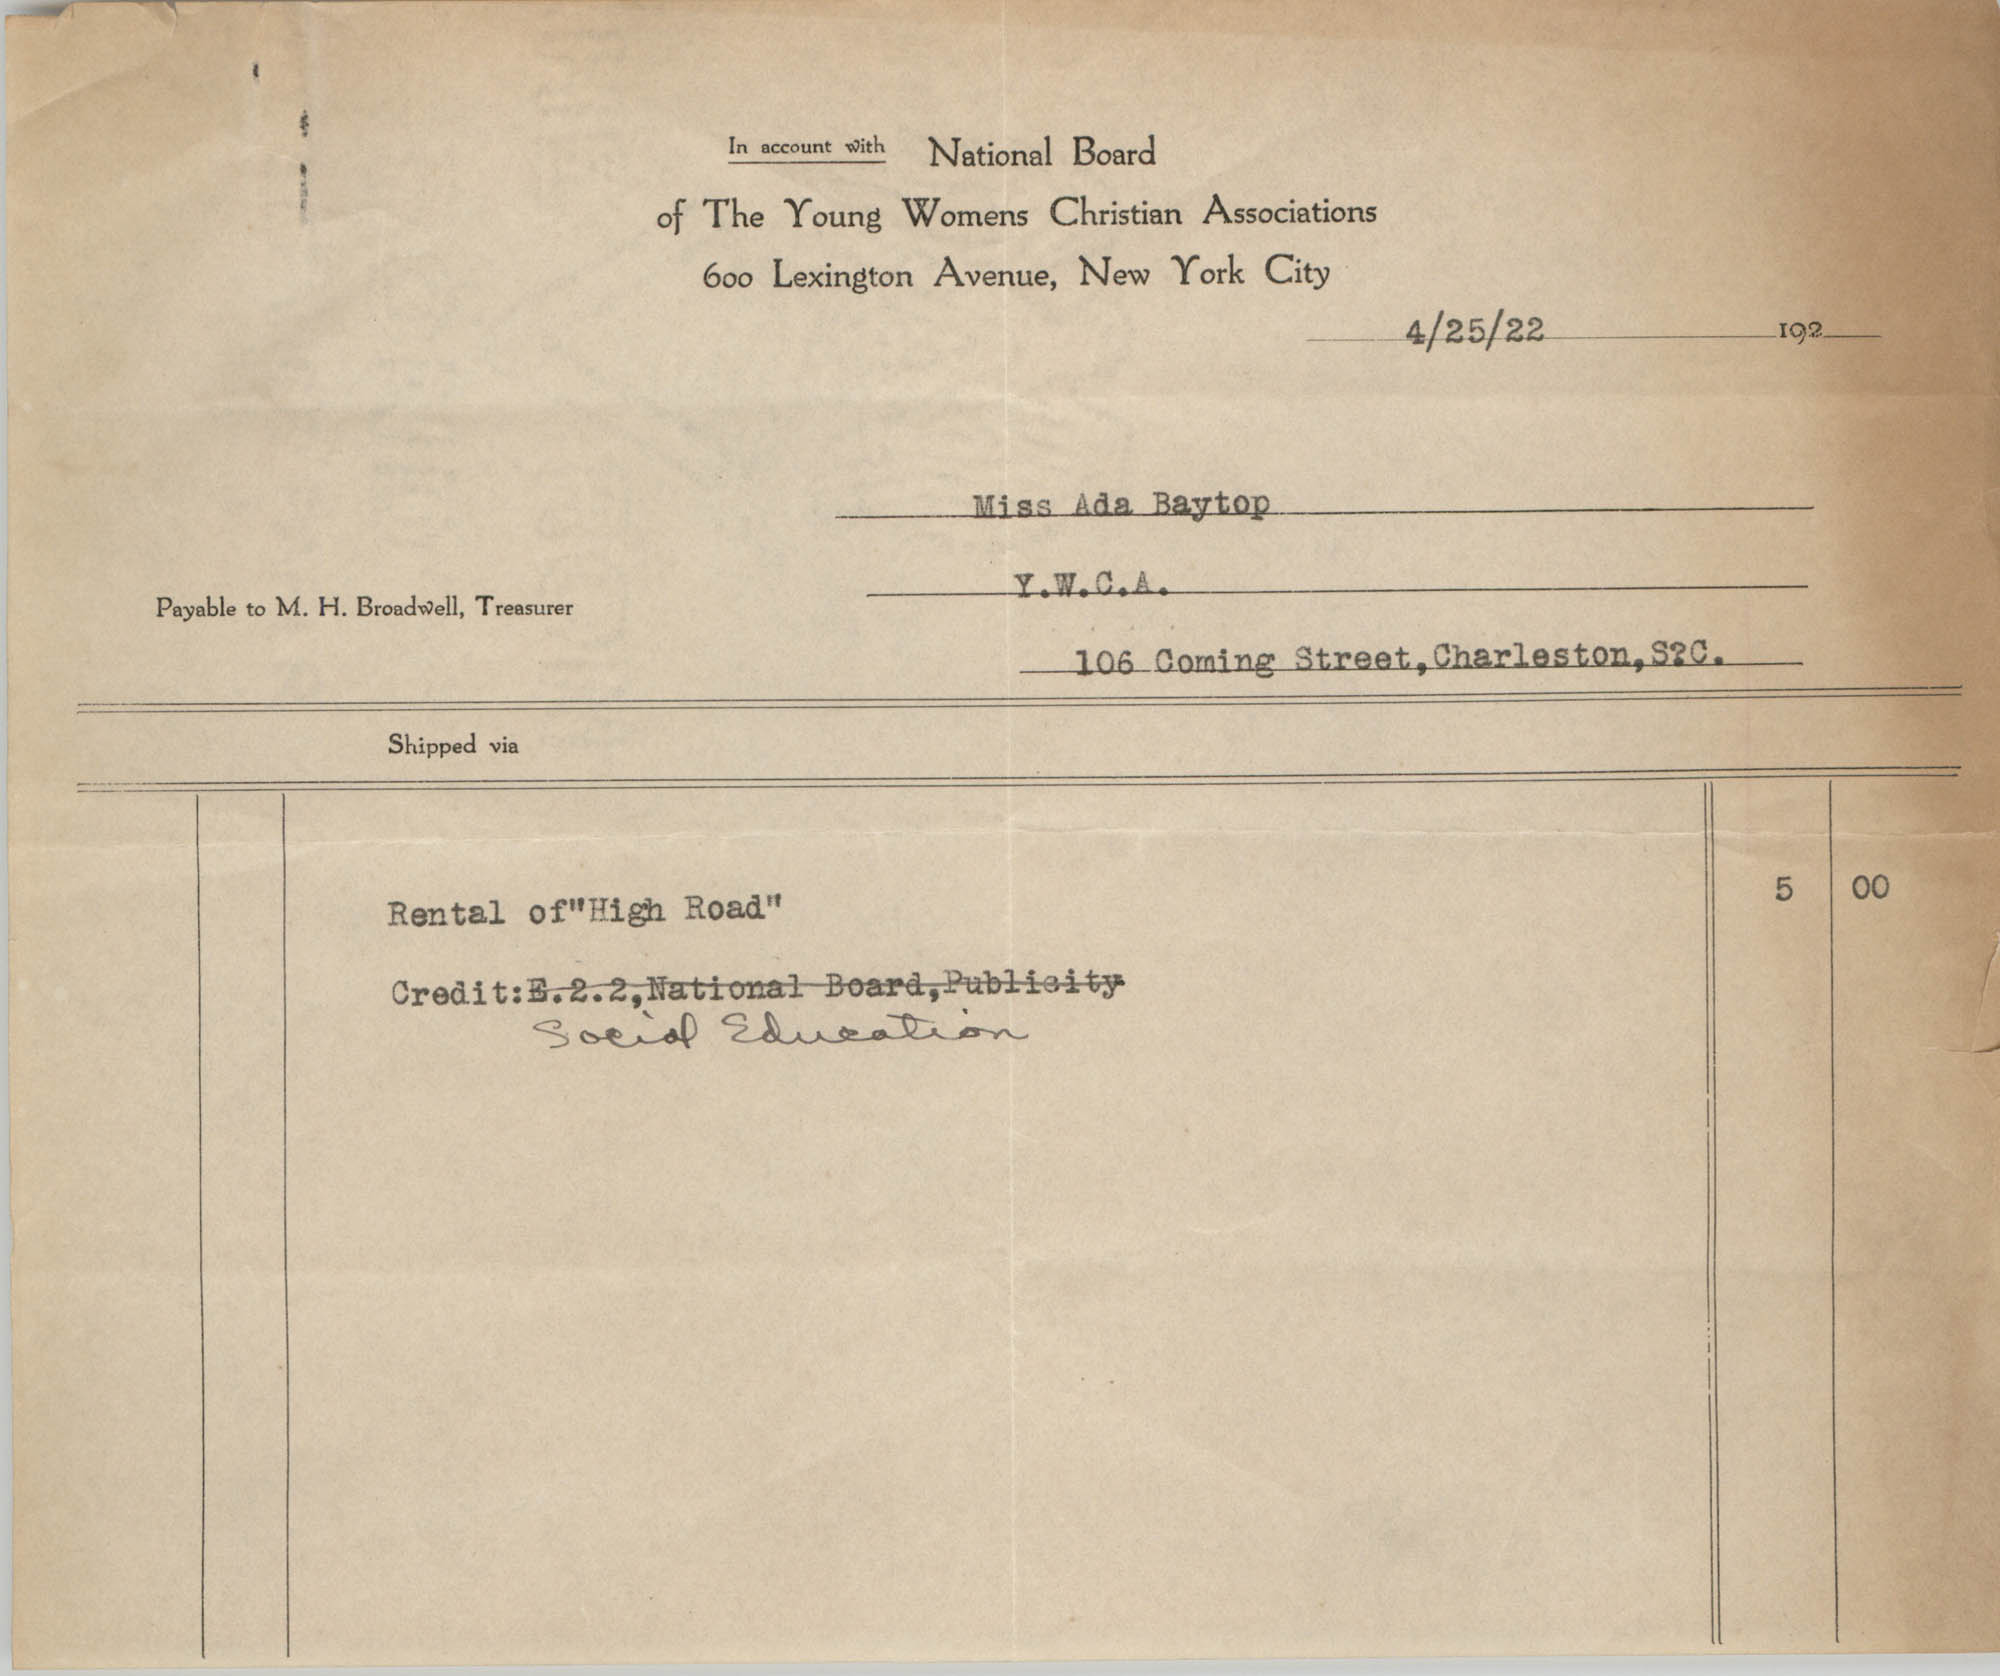 National Board of the Young Womens Christian Associations Invoice to Miss Ada Baytop, April 25, 1922